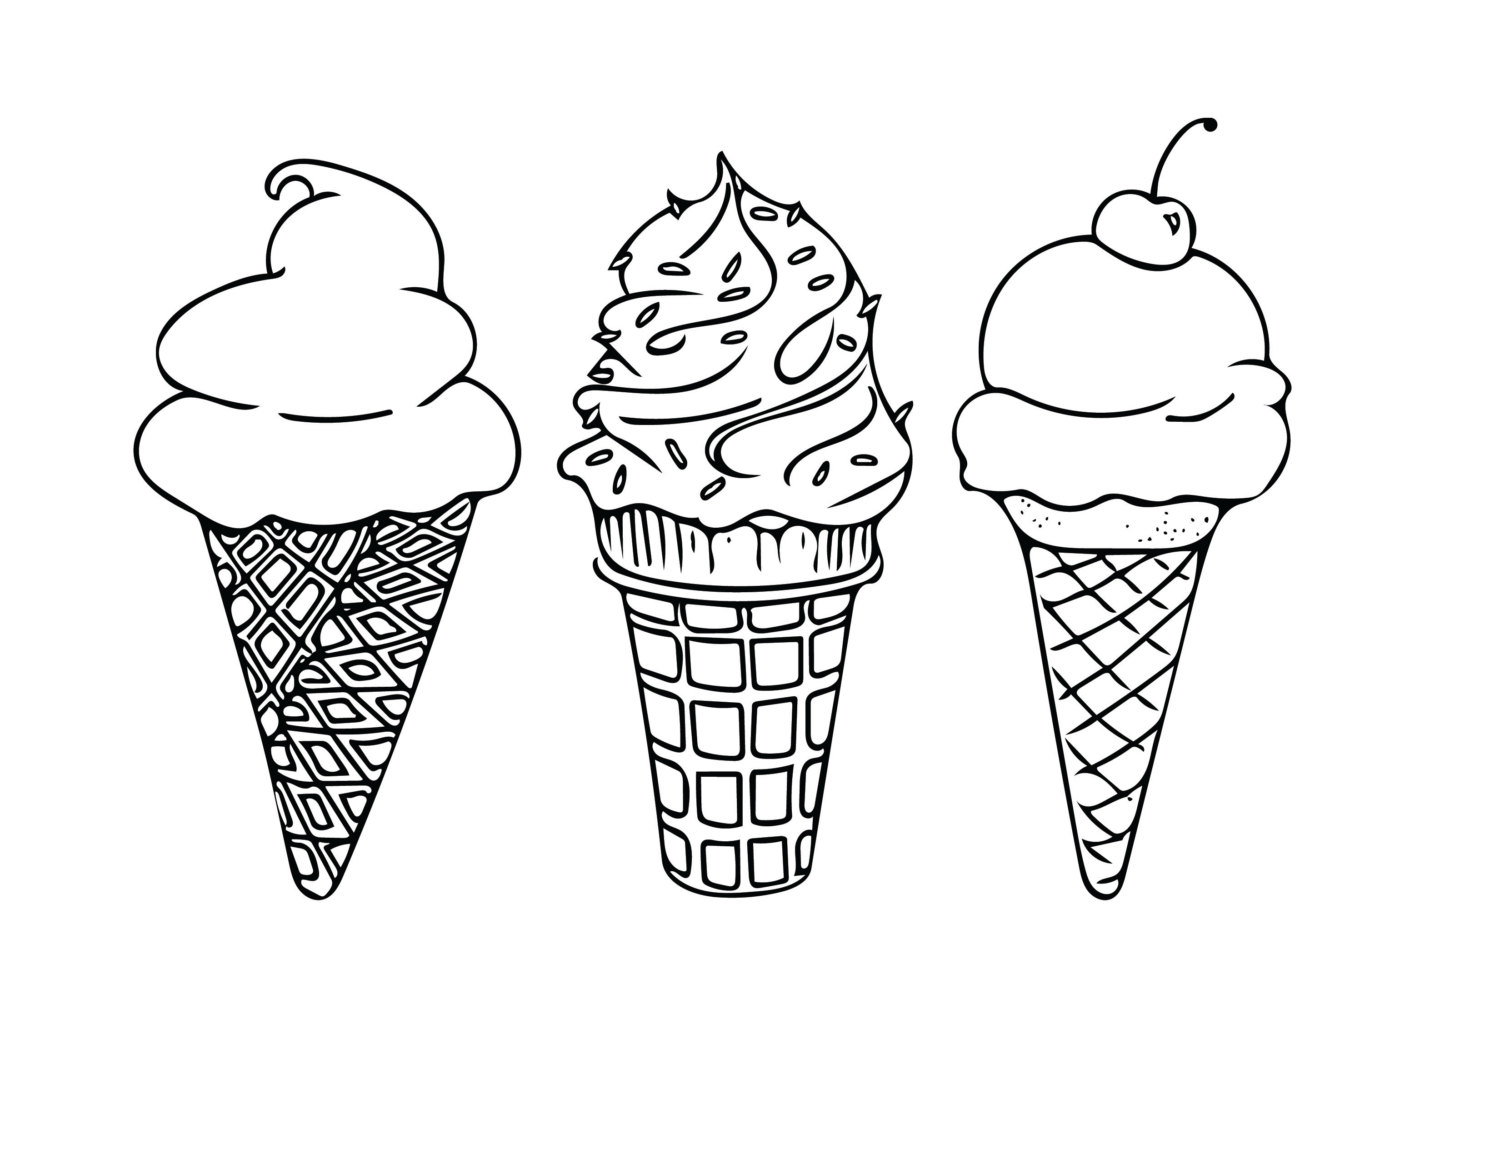 ice cream coloring template printable ice cream bowl coloring pages for girls and boys cream coloring ice template